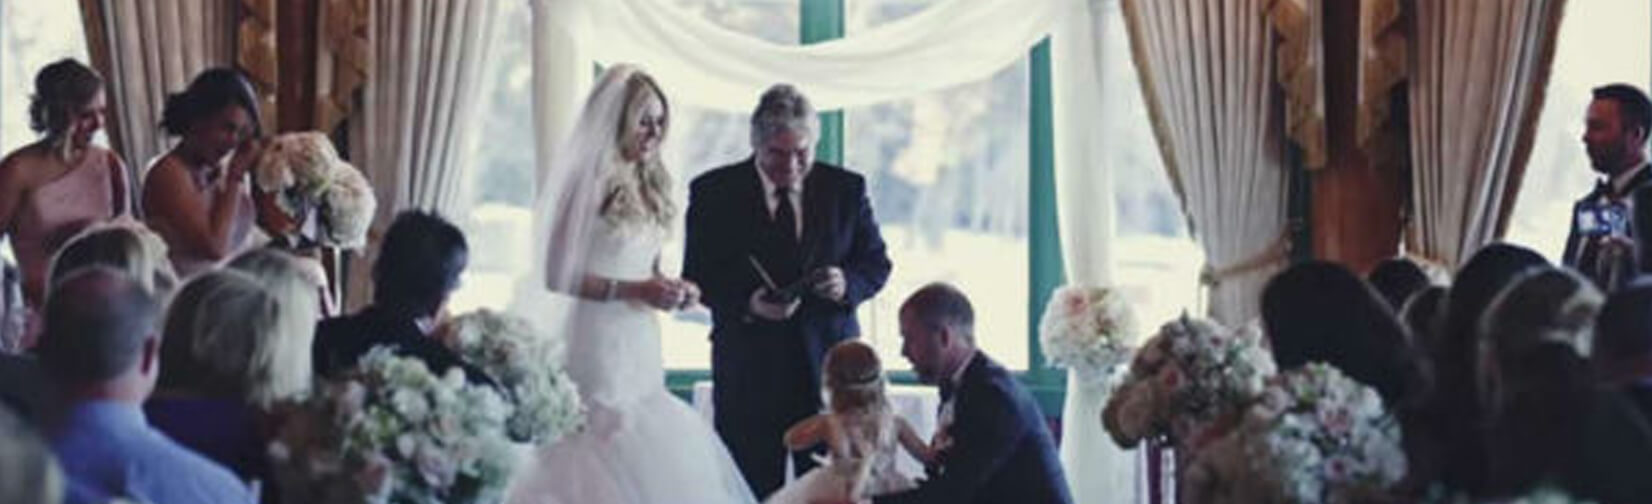 Wedding vows should include Children as well as partners